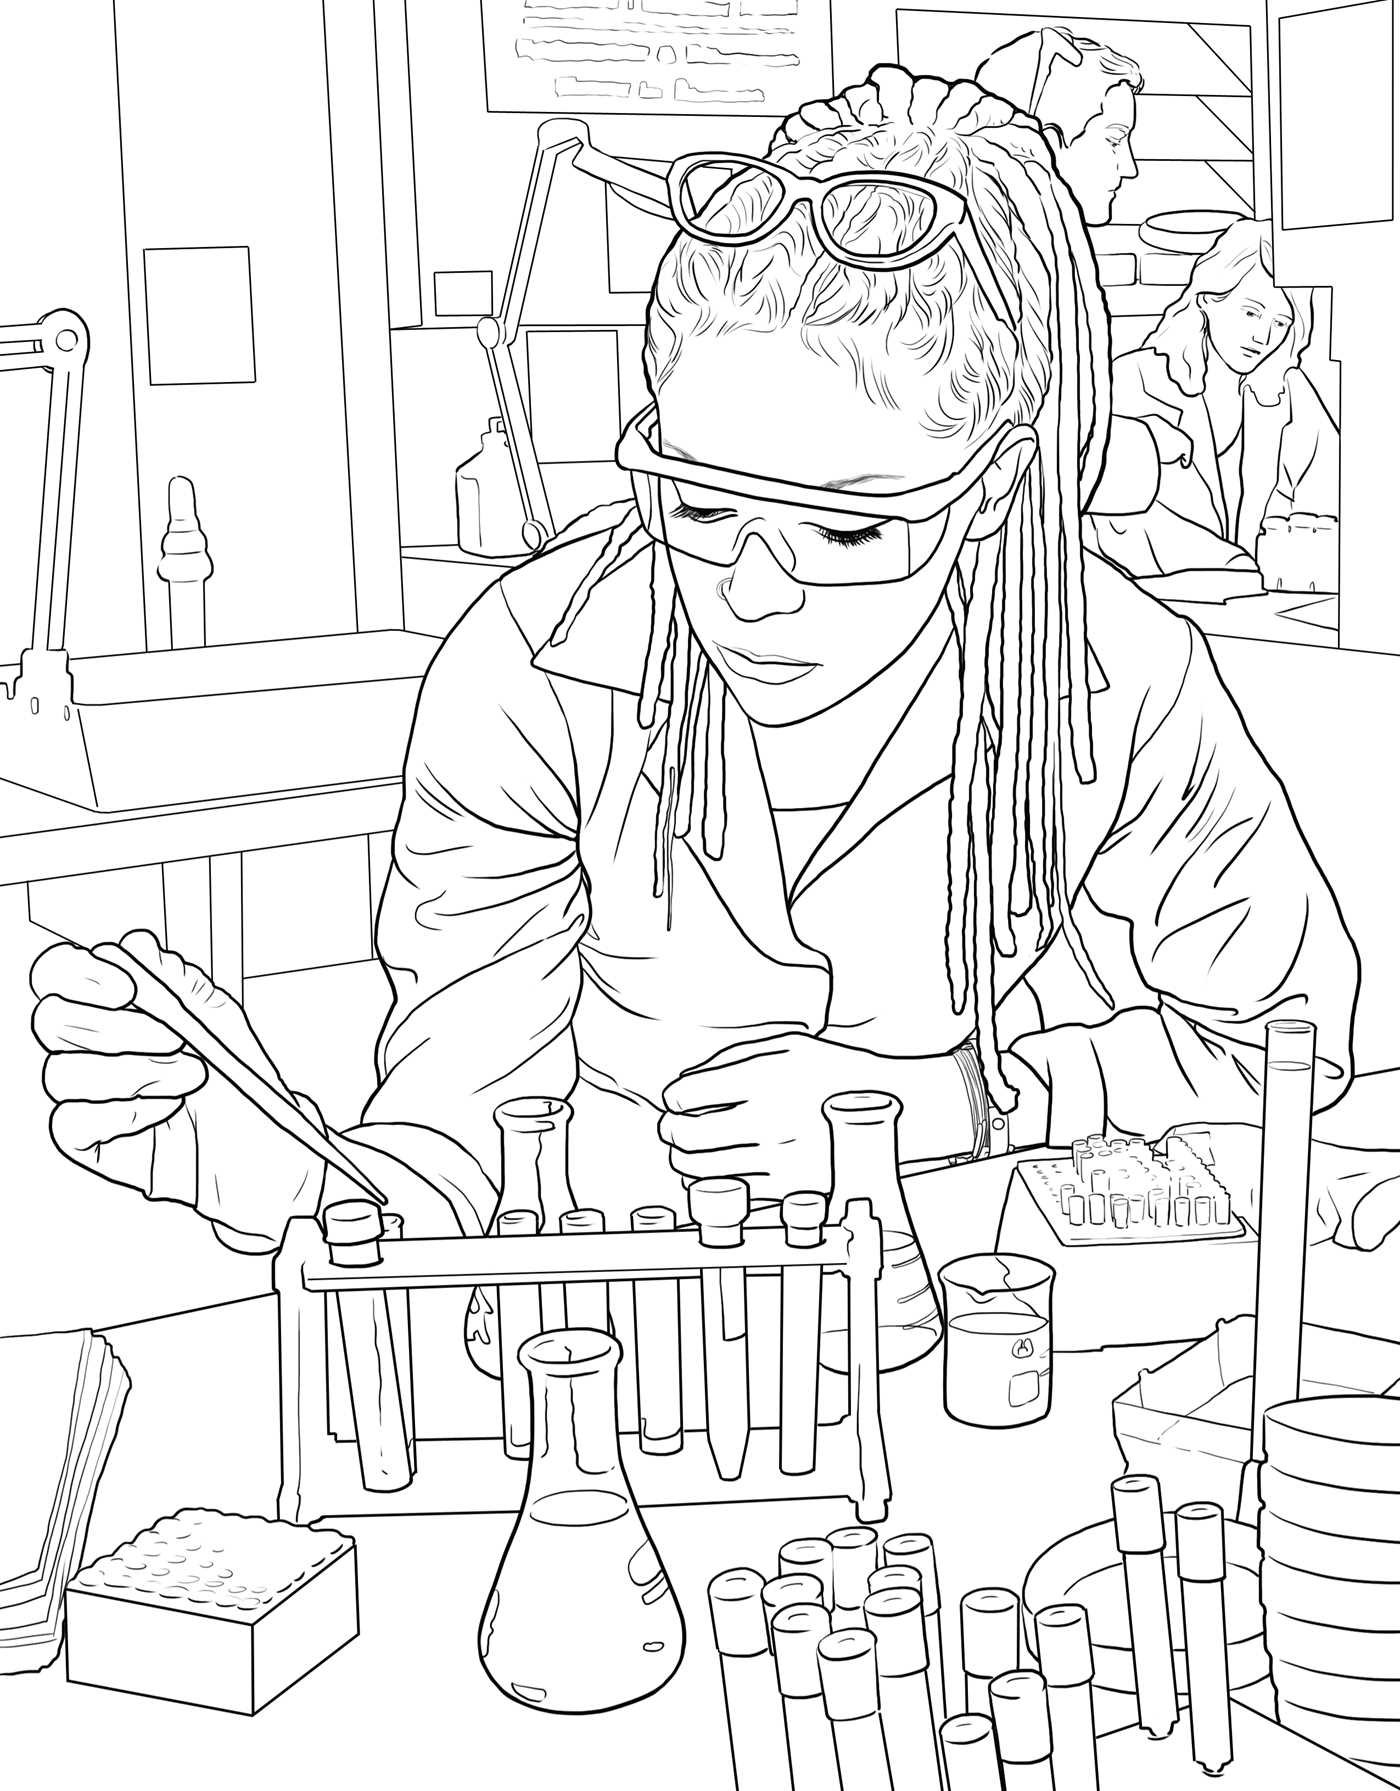 Orphan Black The ficial Coloring Book Insight Editions